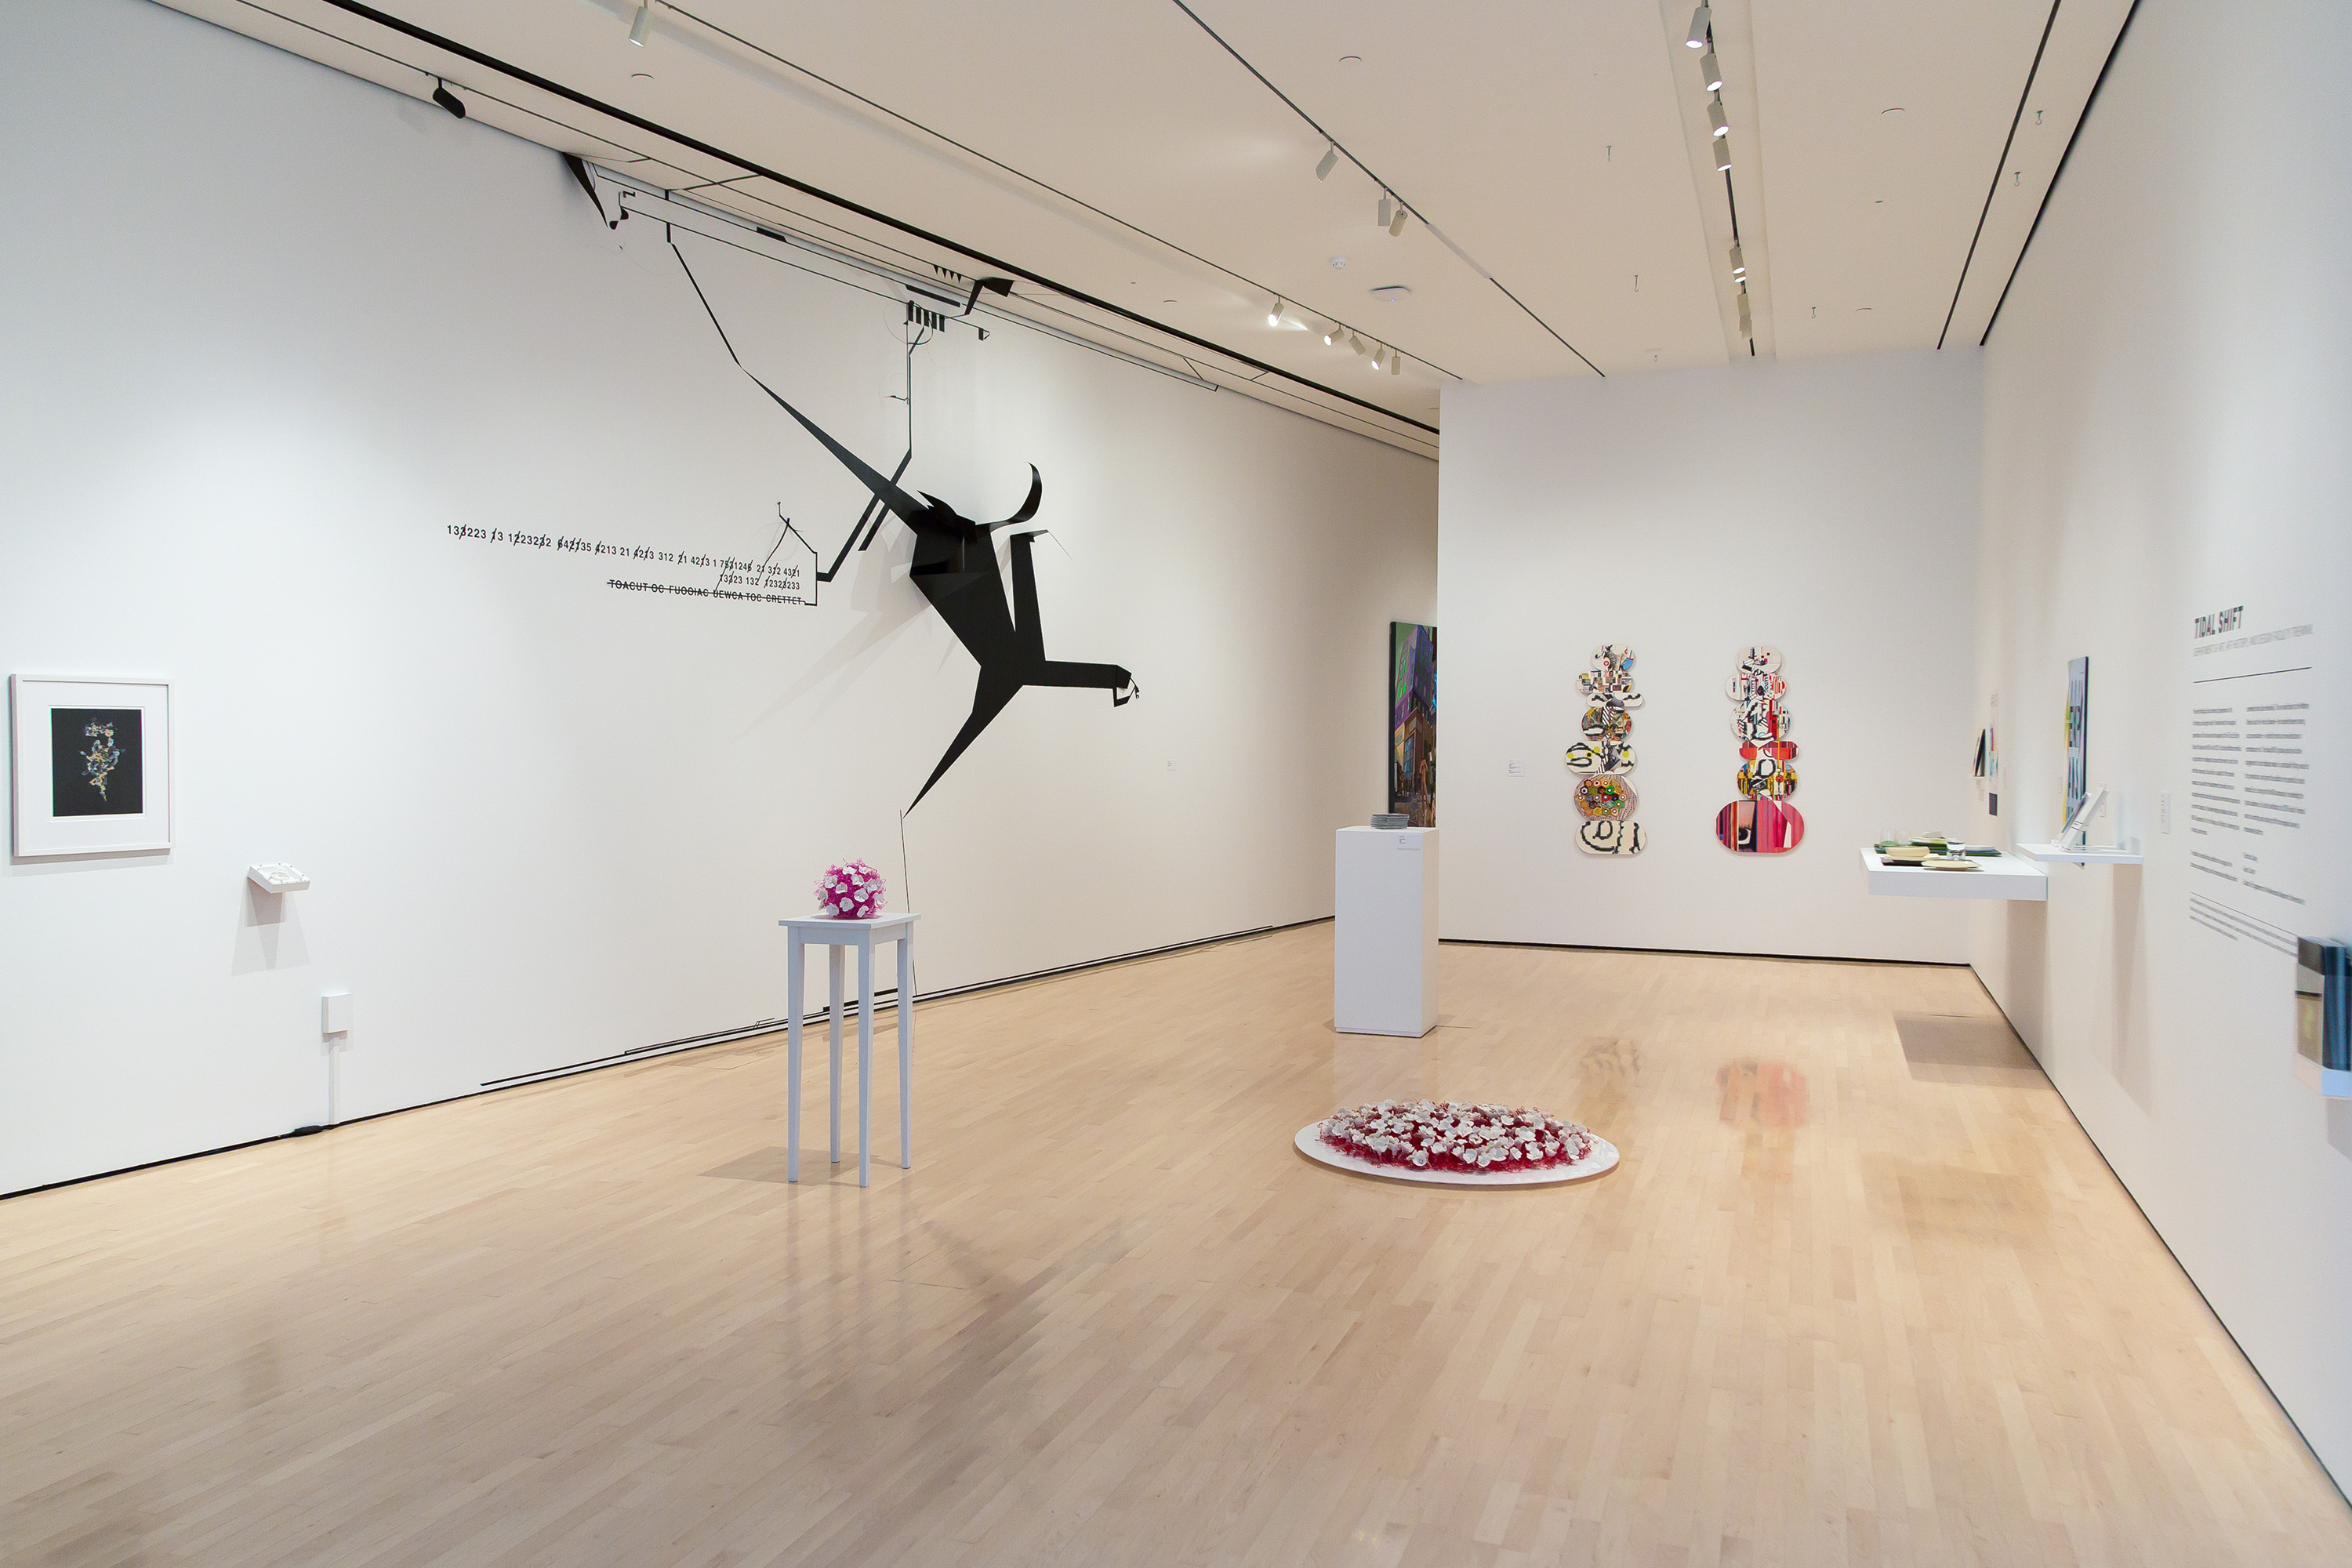 <i>Tidal Shift: Department of Art, Art History, and Design Faculty Triennial</i>, installation view at the Eli and Edythe Broad Art Museum at Michigan State University, 2015. Photo: MSU Broad